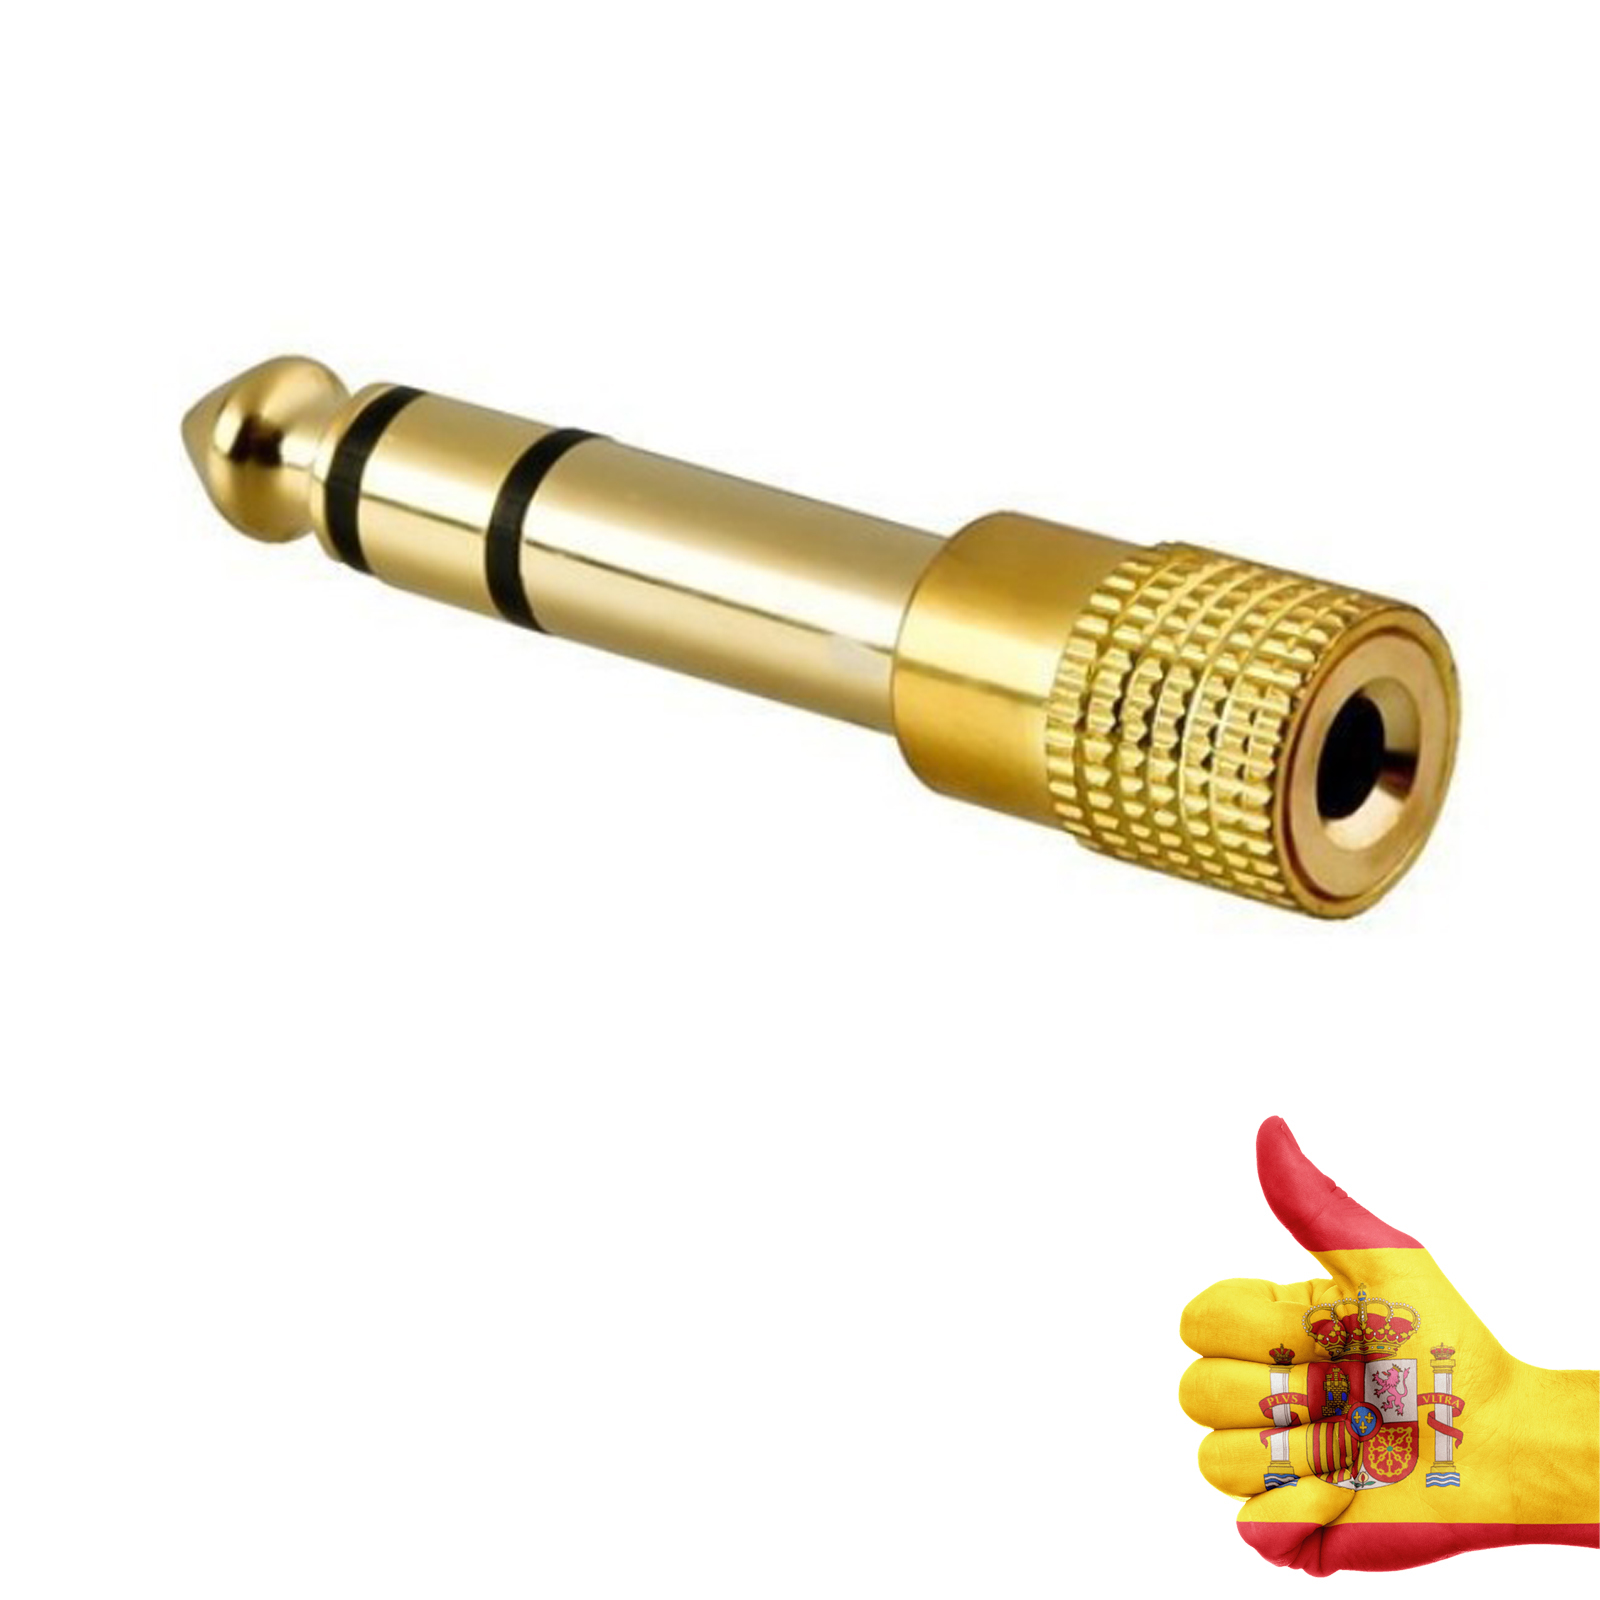 Adapter 3,5mm female to 6,35mm JACK PLUG Audio Stere Gold 1/4 inch adapter for headphones electric <font><b>guitars</b></font> image